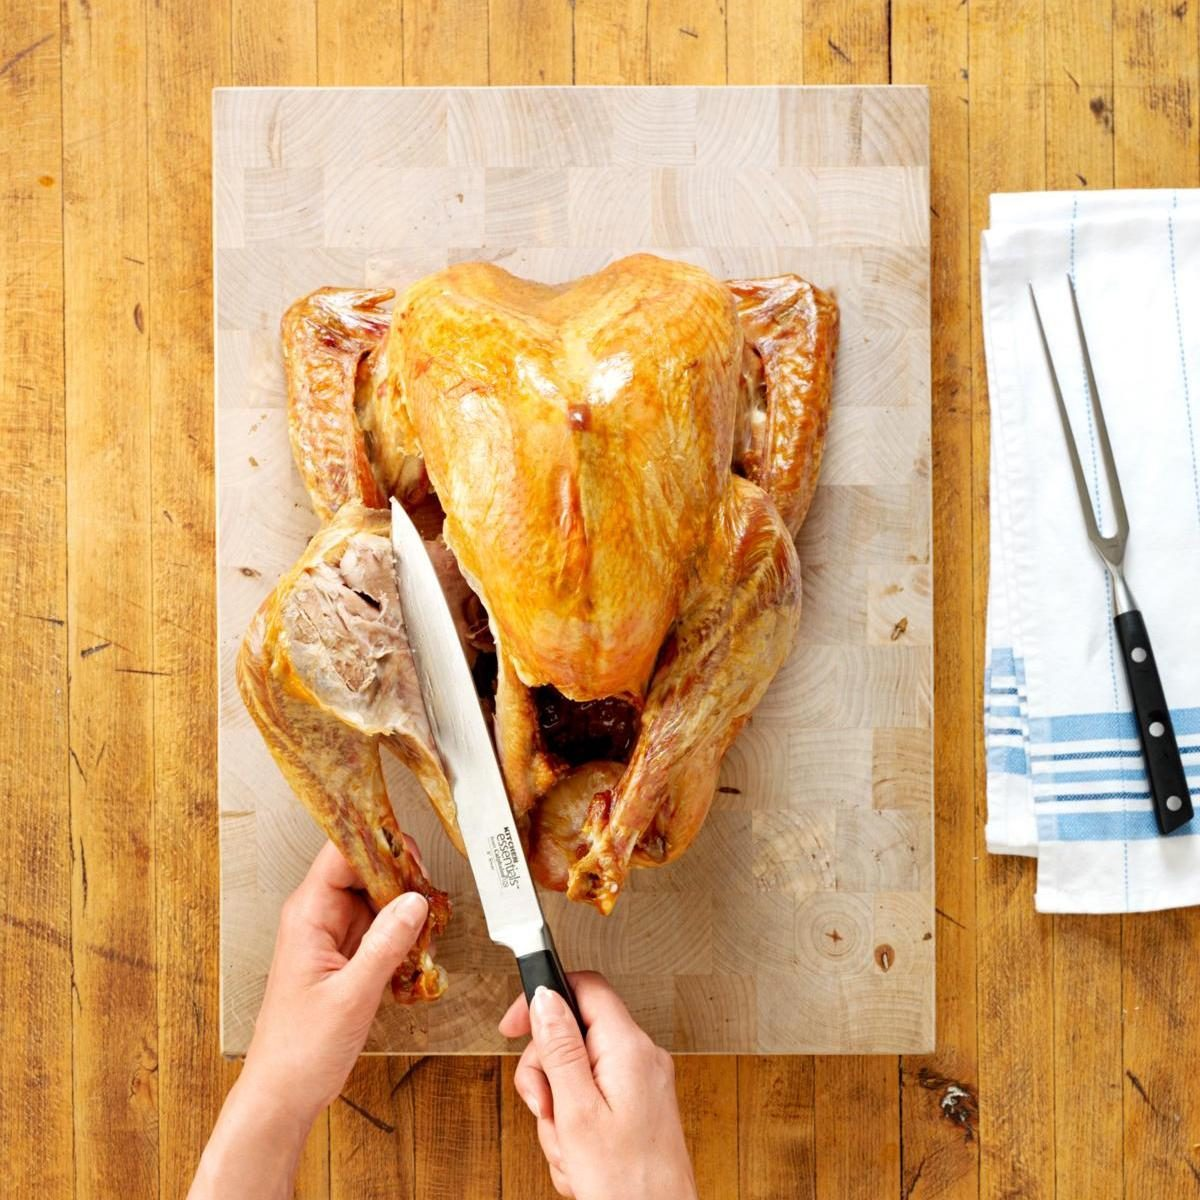 Image of cook carving a turkey